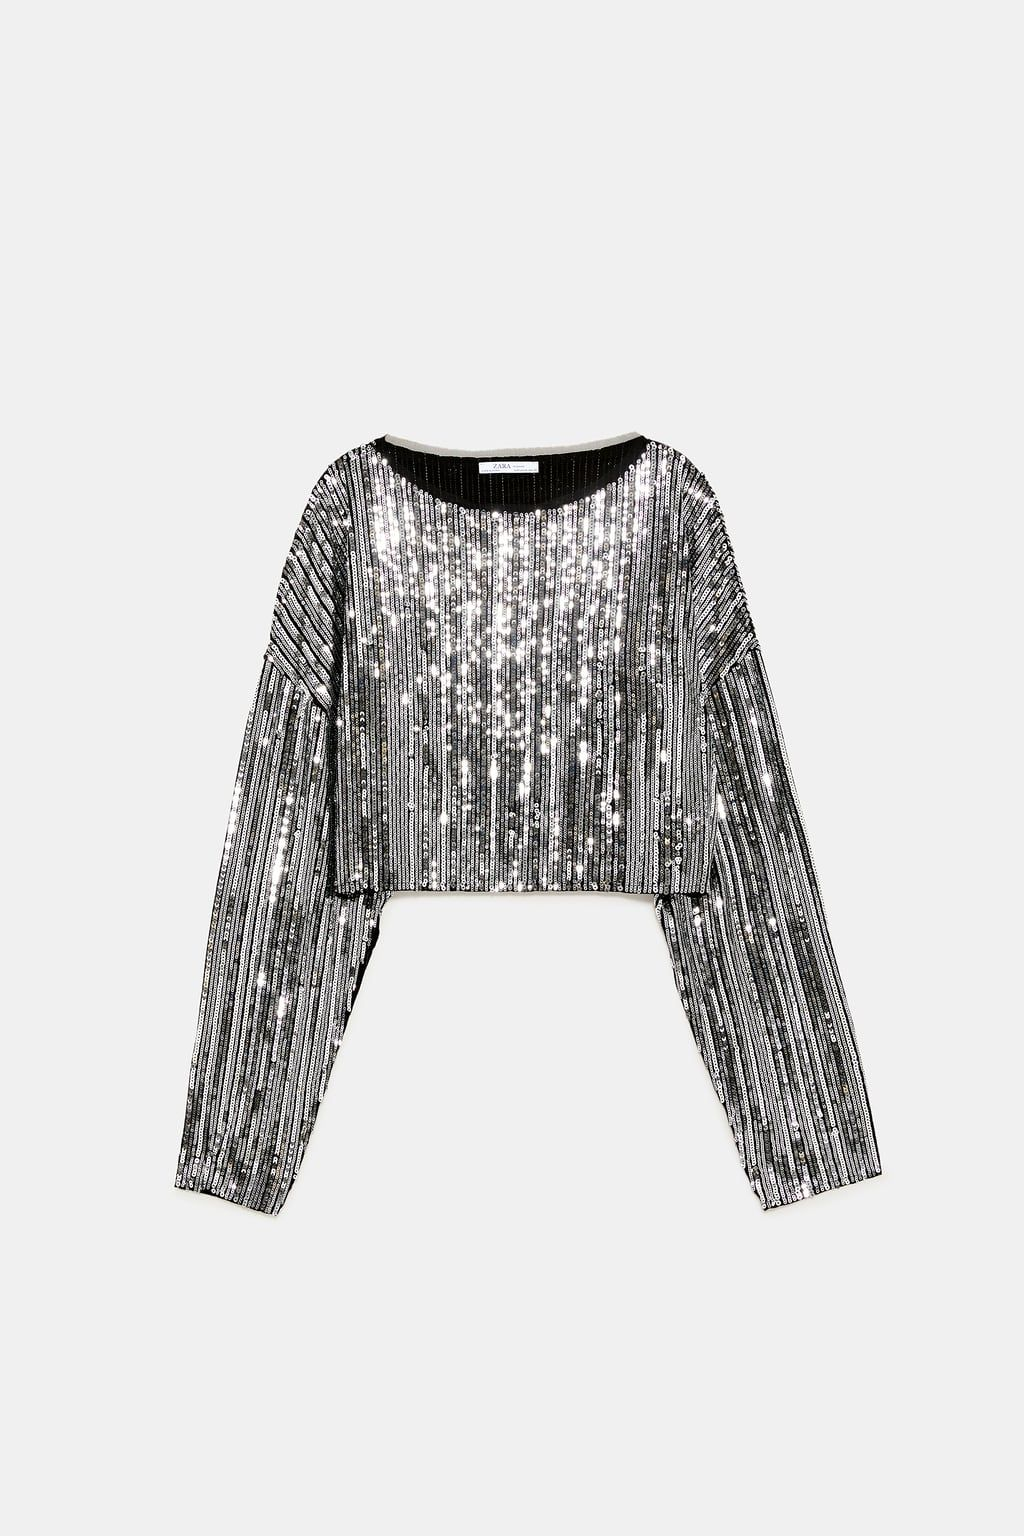 da9b6179 Sequined cropped t-shirt in 2019 | fashion | Shirts, Fashion, Sequins